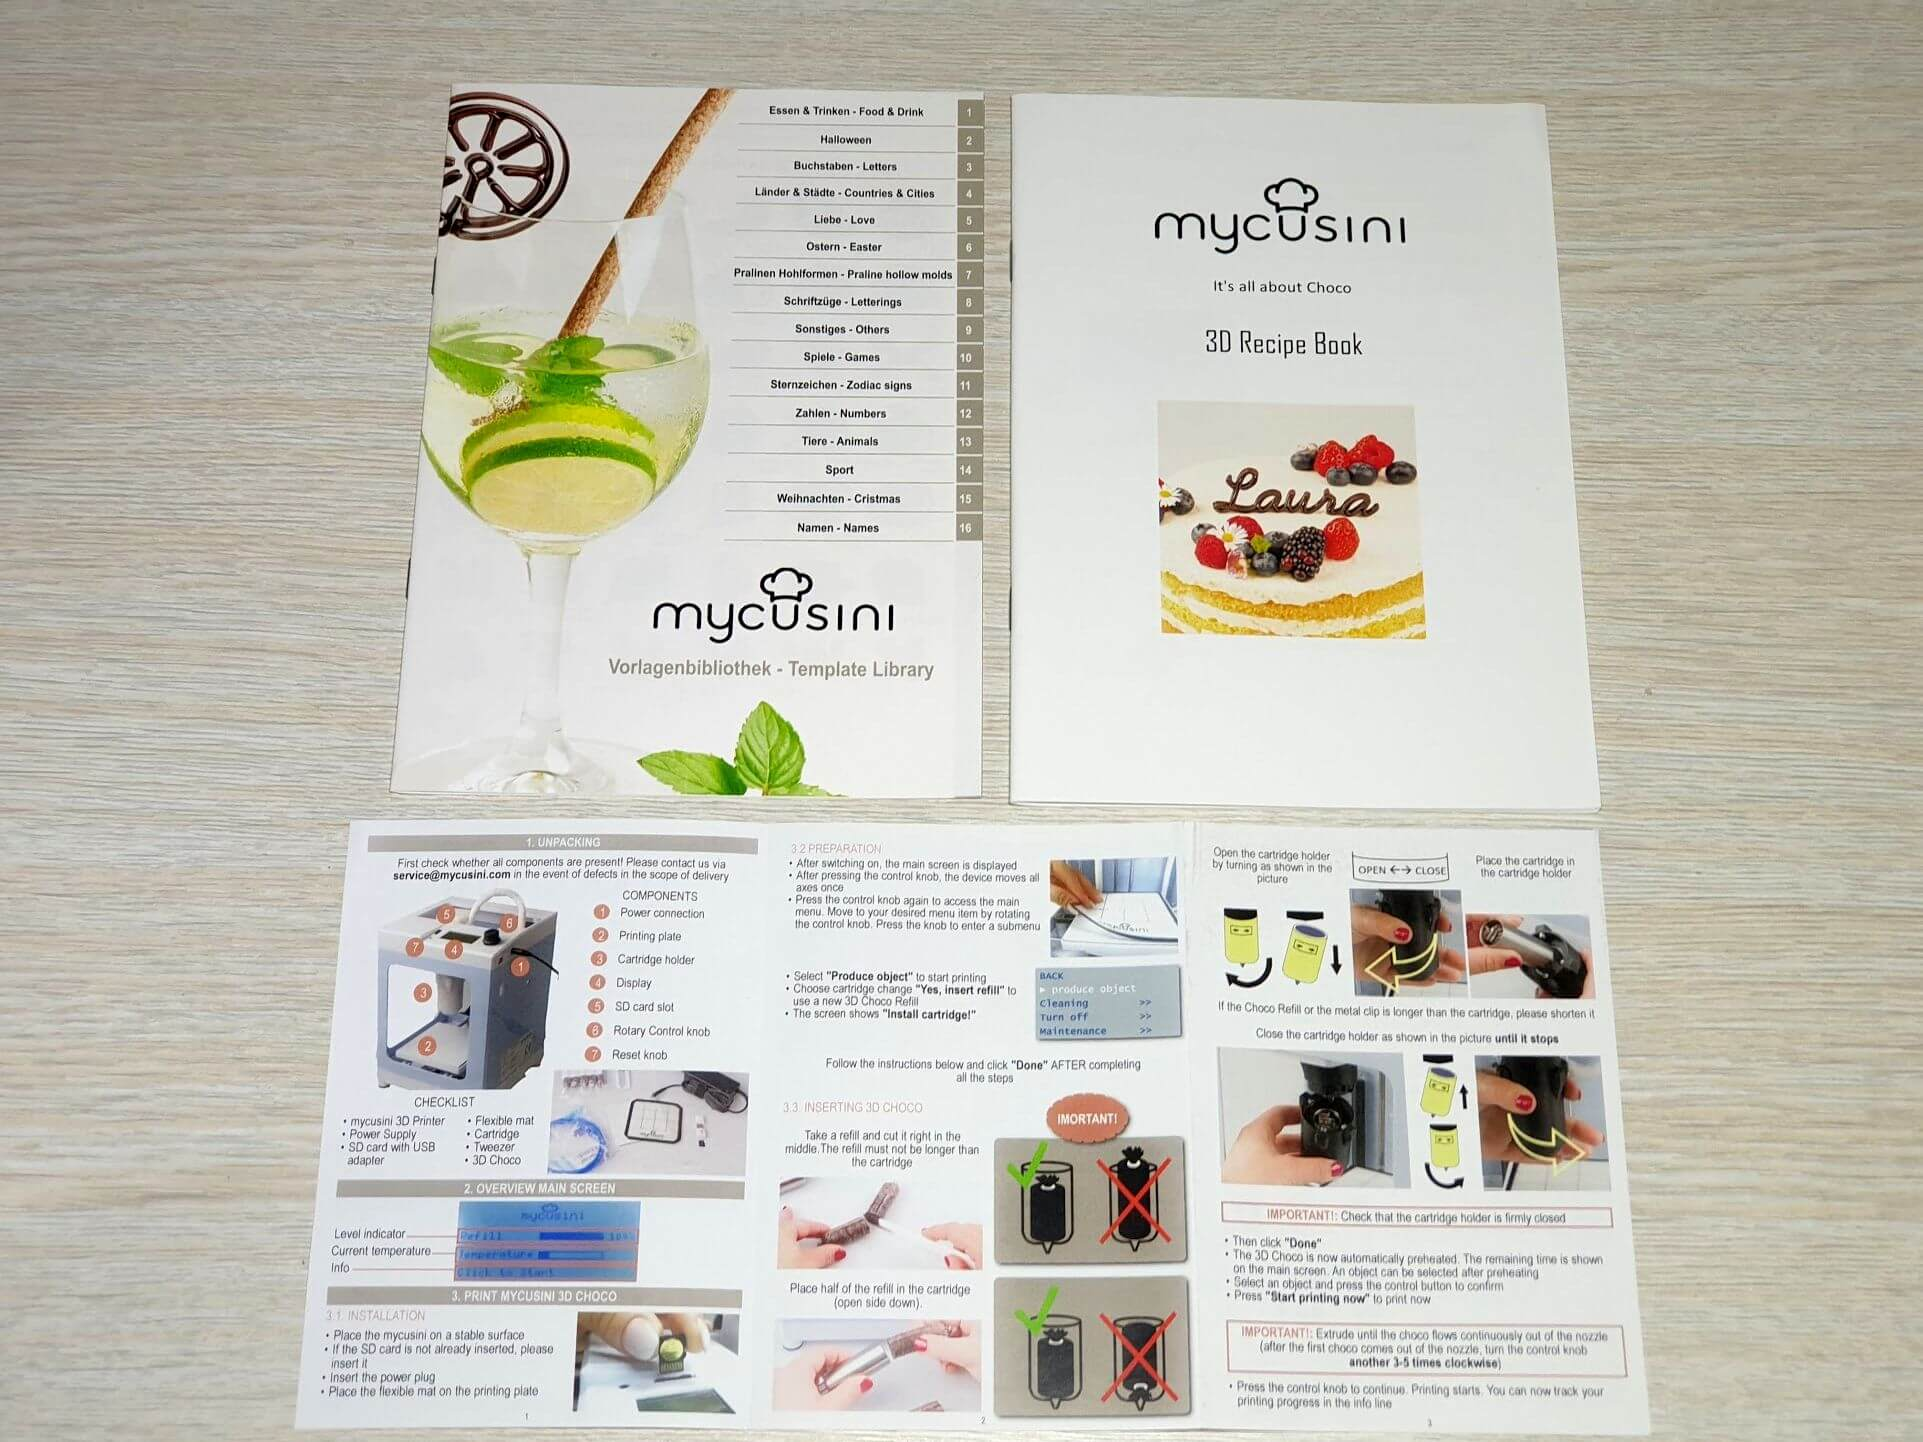 MyCusini Recipe Books